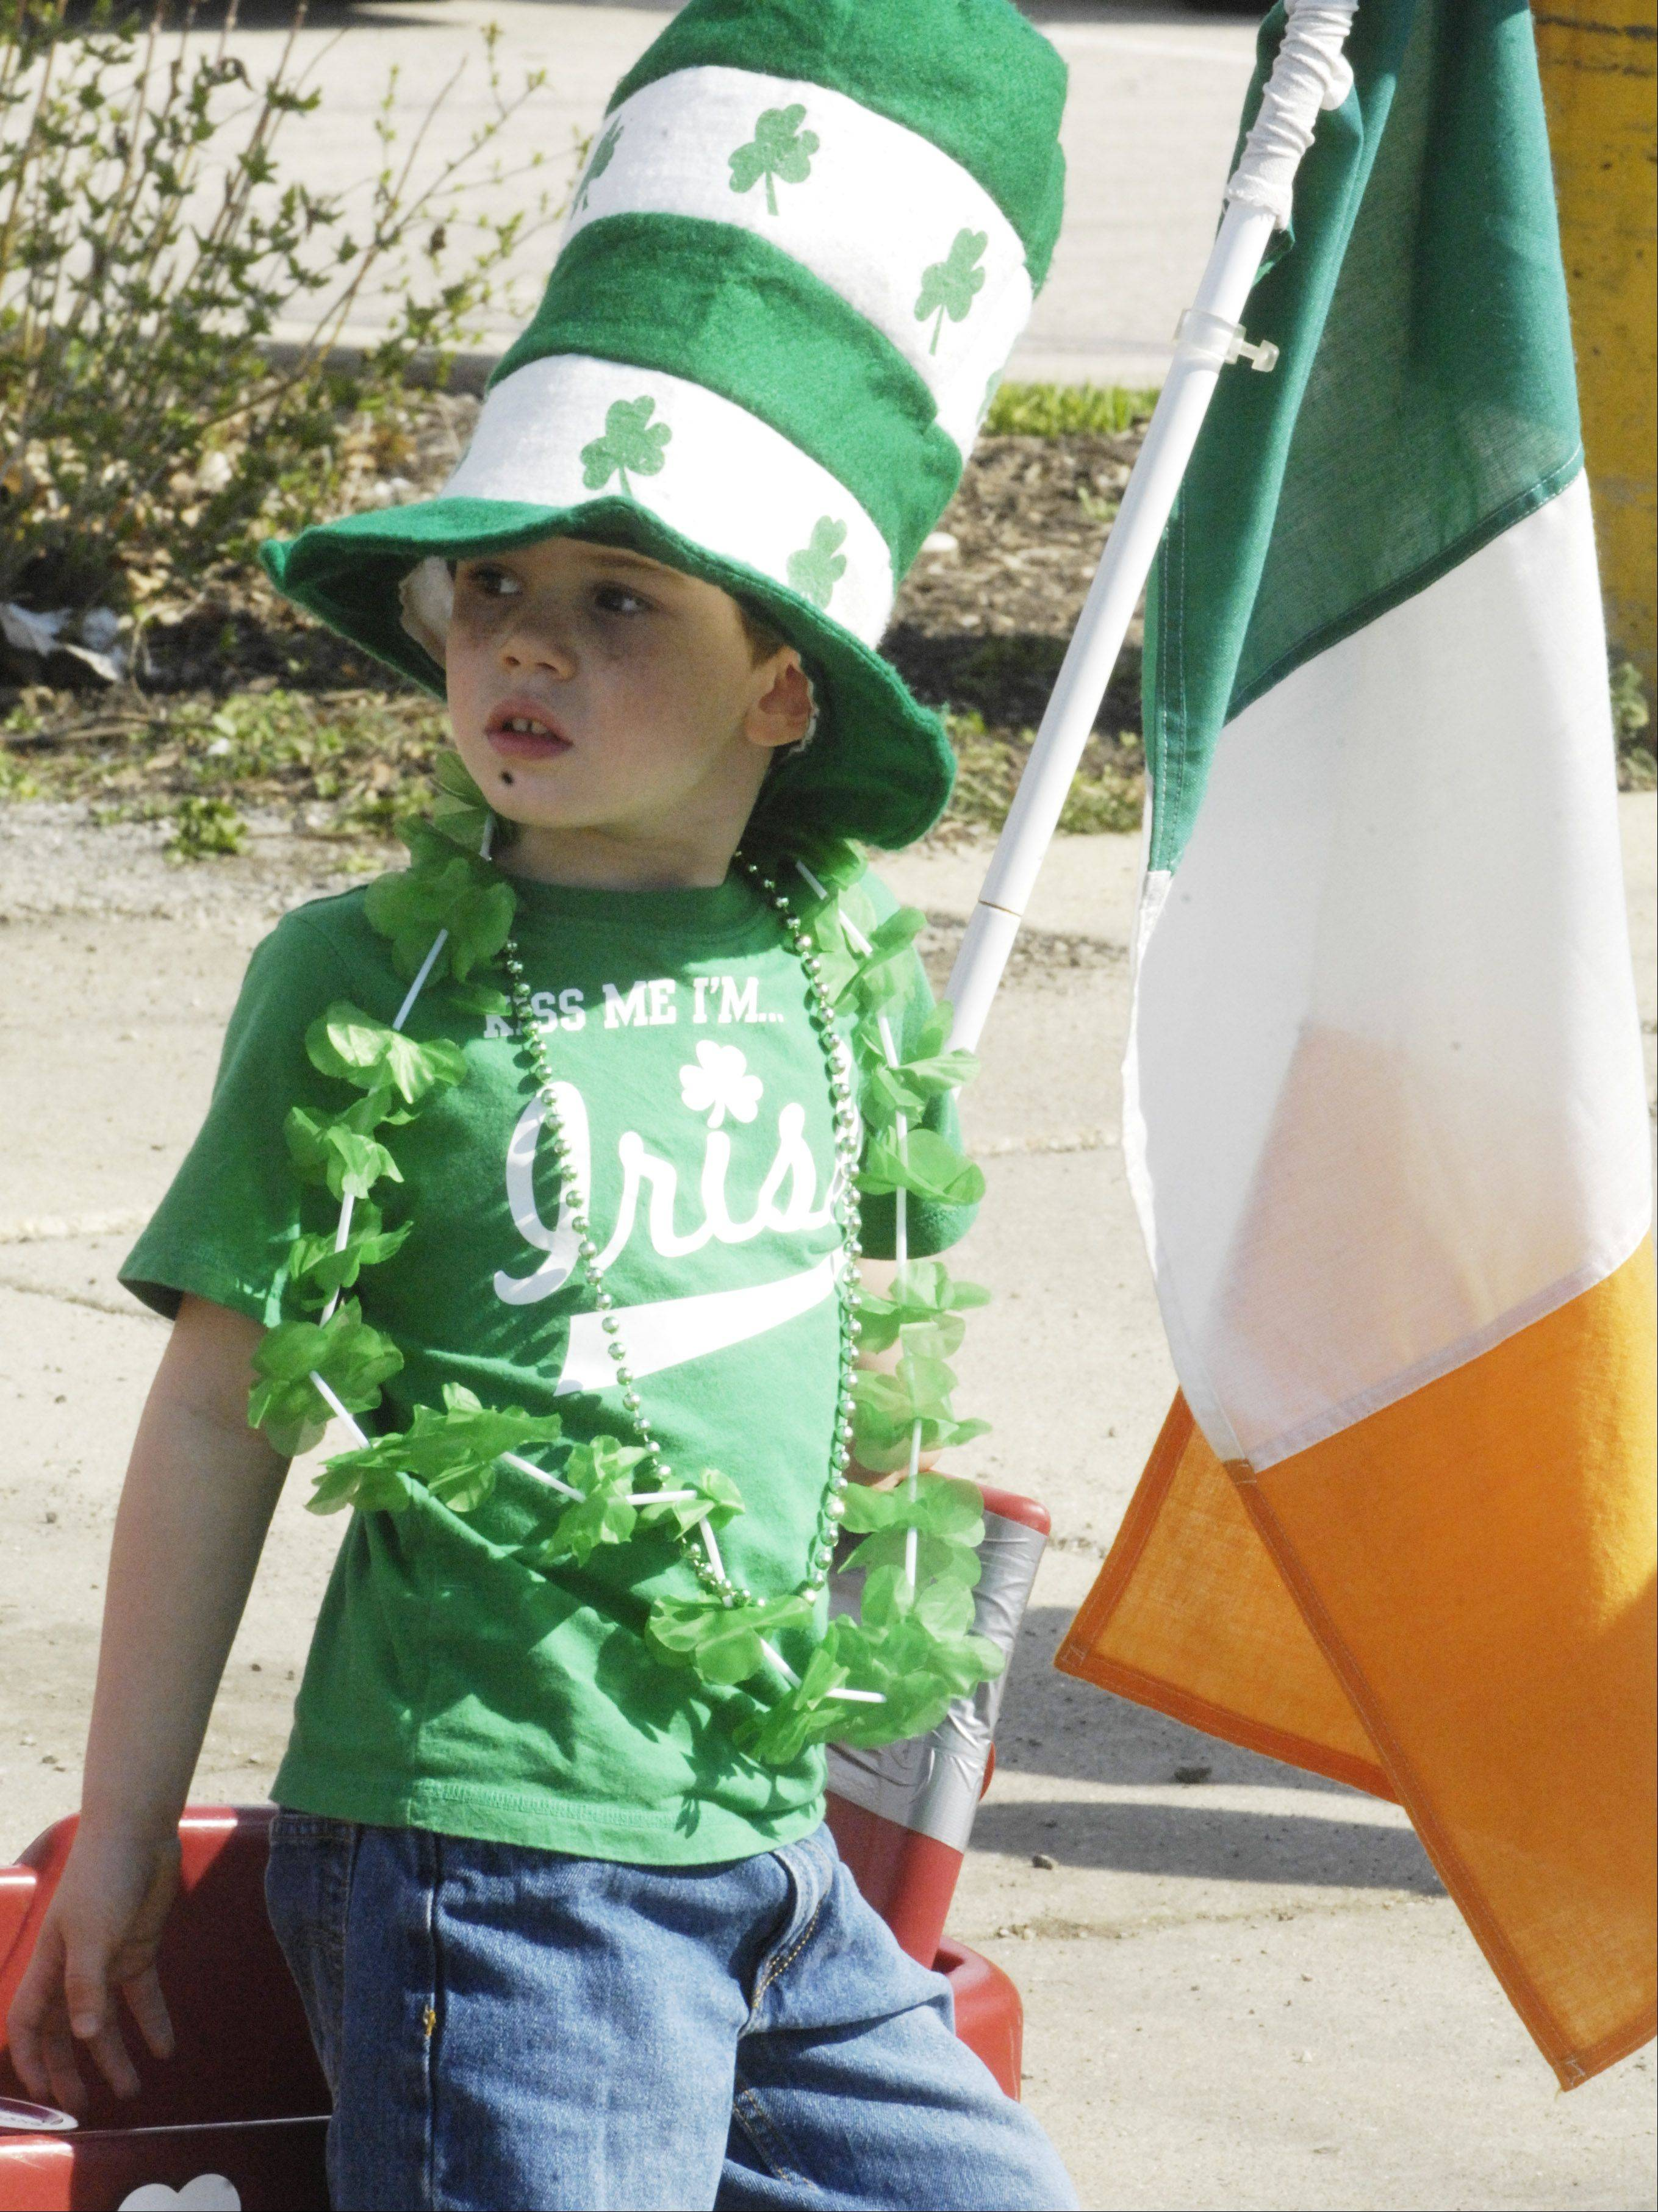 Jack Wrigley Sloan, 5, of Palatine waits for the start of the Palatine St. Patrick's Day Parade Saturday.